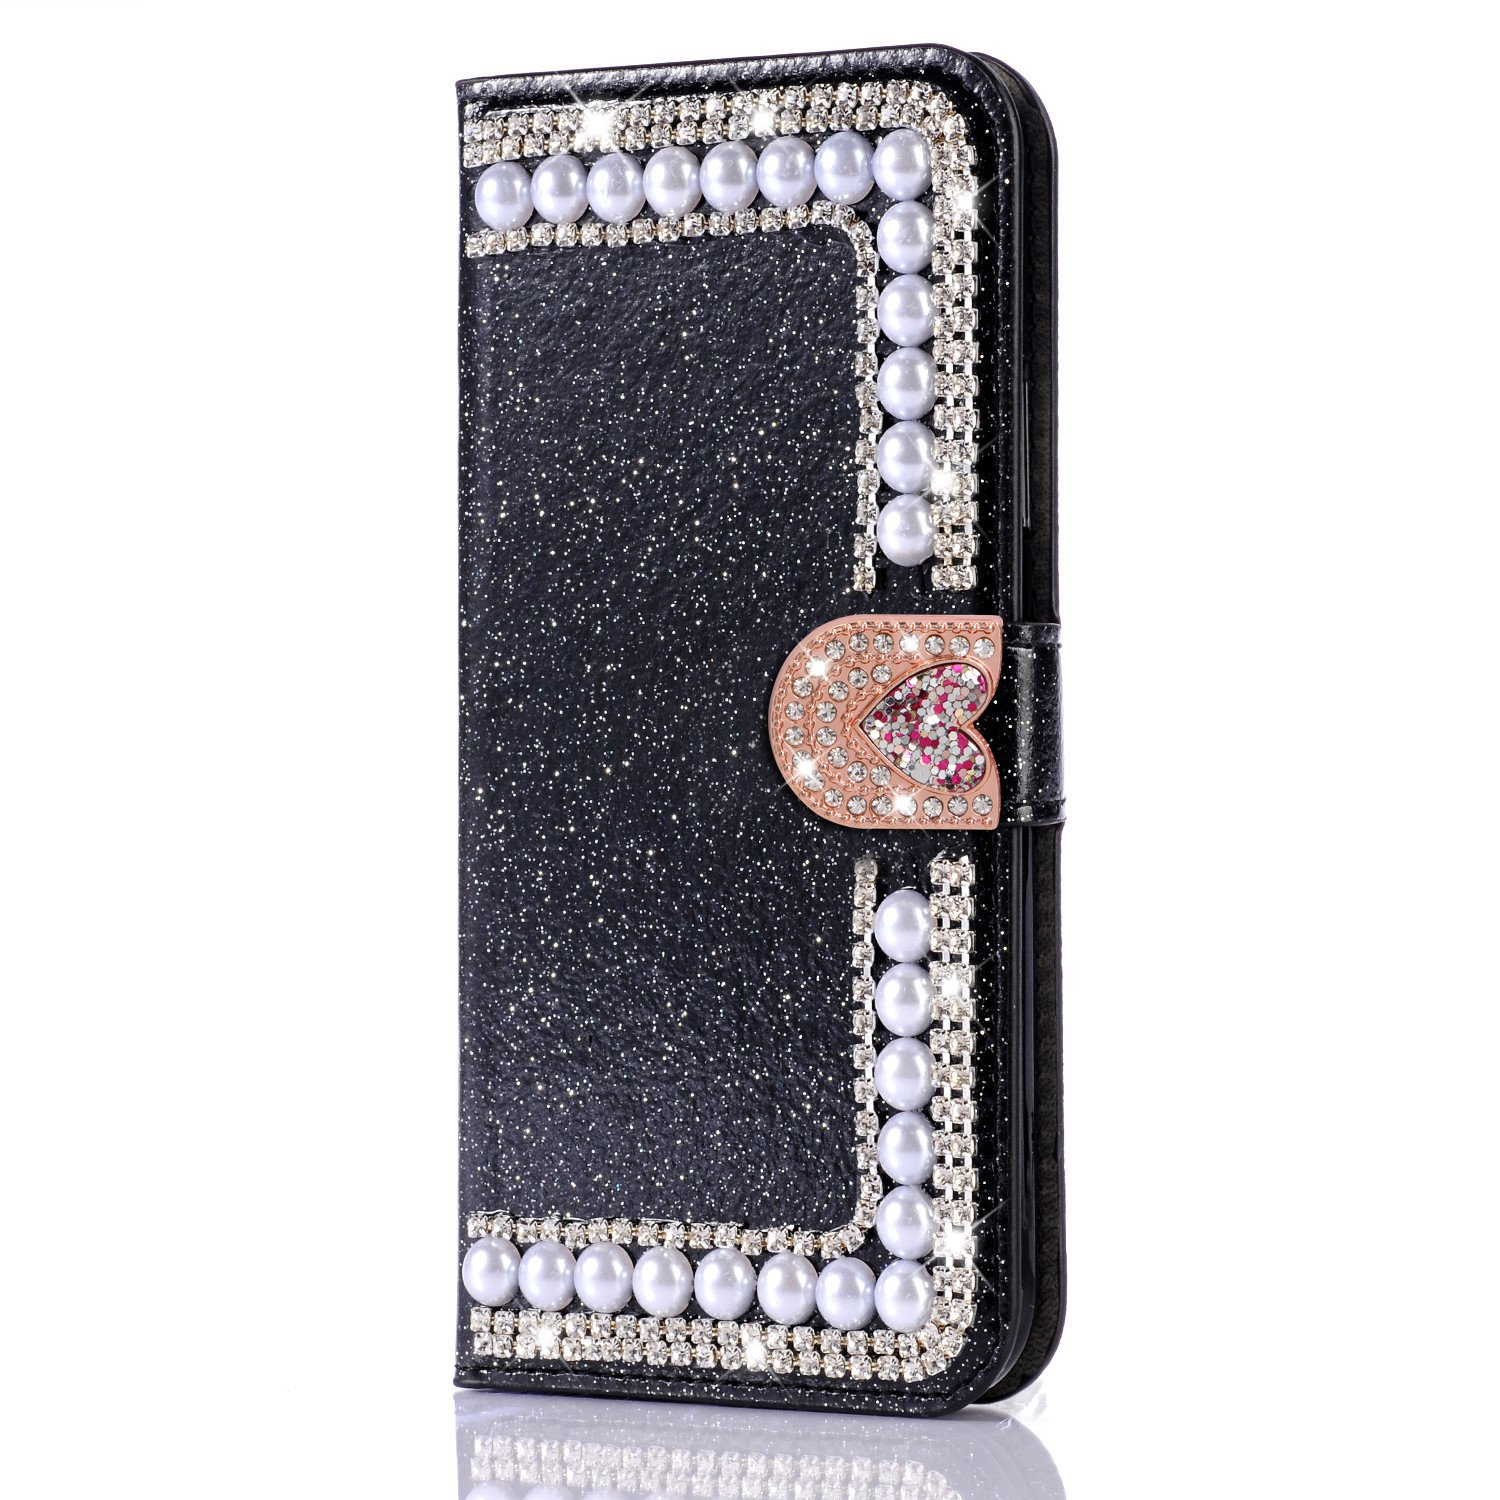 Diamond Case for Huawei P20 Pro,Cistor Luxury Black Glitter 3D Handmade Pearl Wallet Case for Huawei P20 Pro,Soft PU Leather Case with Love Heart Magnetic Closure Card Slot Cover + 1x Free Ring Holder by Cistor (Image #5)